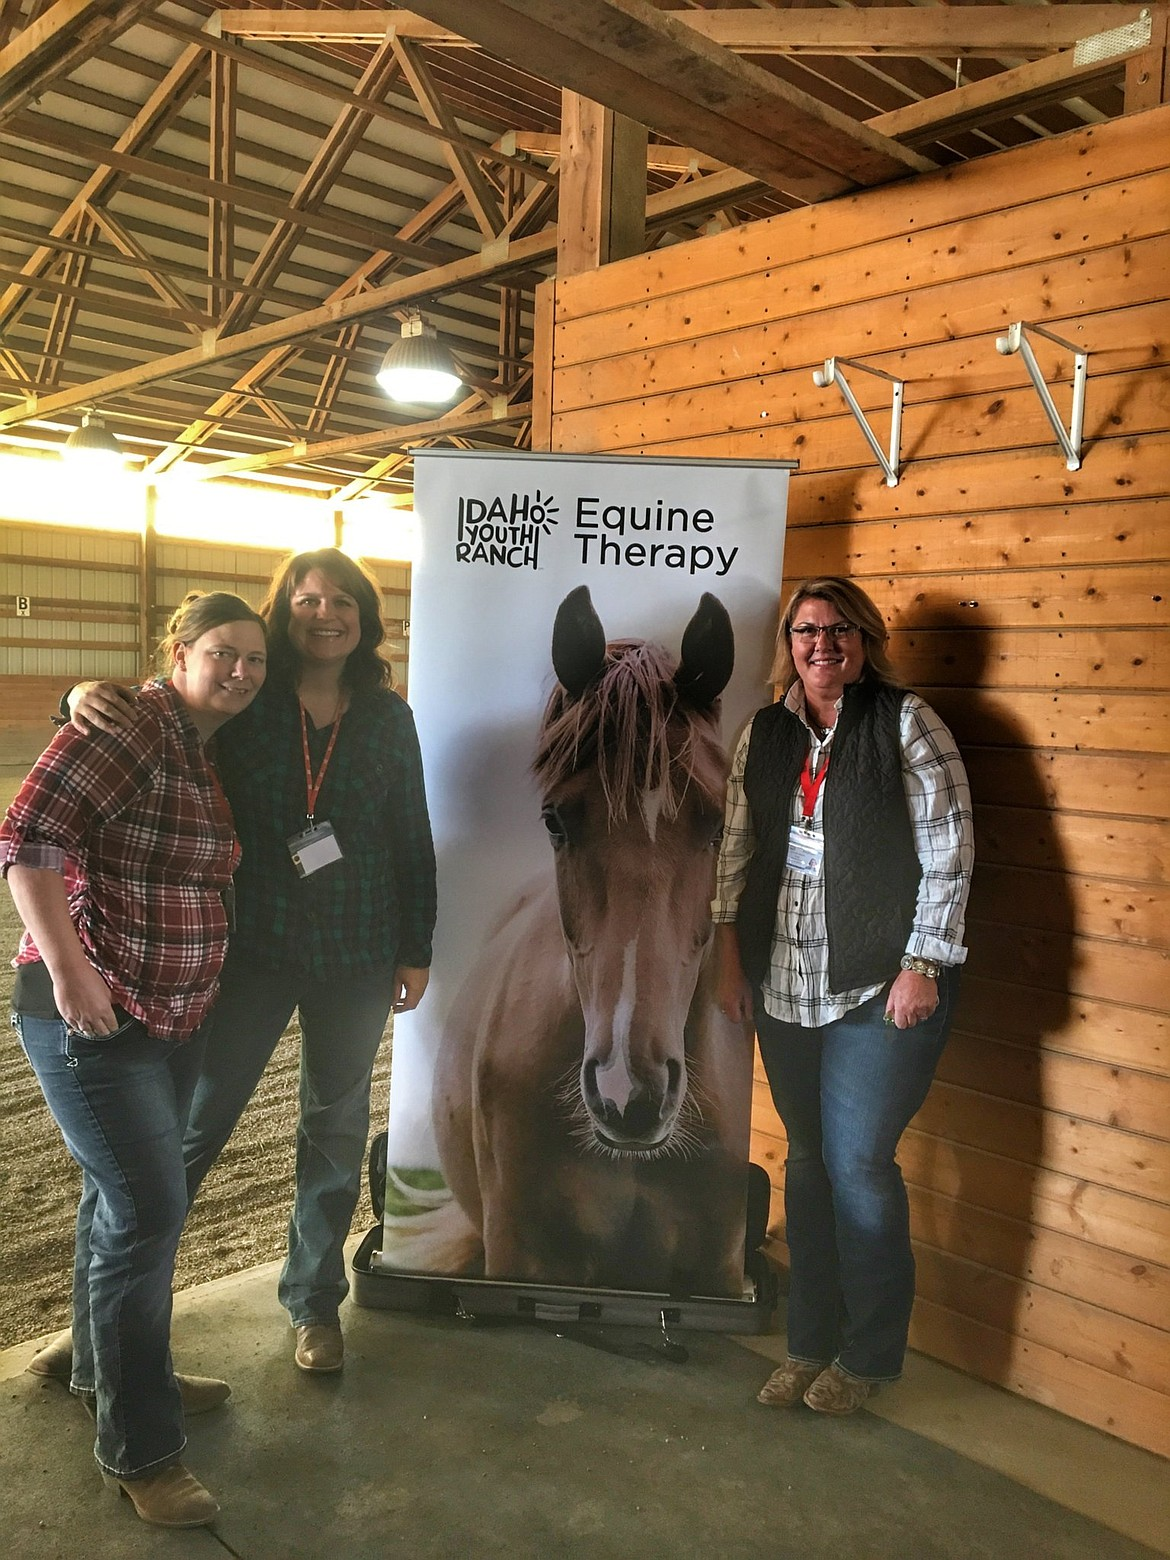 Samantha Roberts(L), equine therapist; Amanda Smith, program manager and therapist; and Christie Hartin(R), equine specialist, pose in front of the equine therapy program sign.